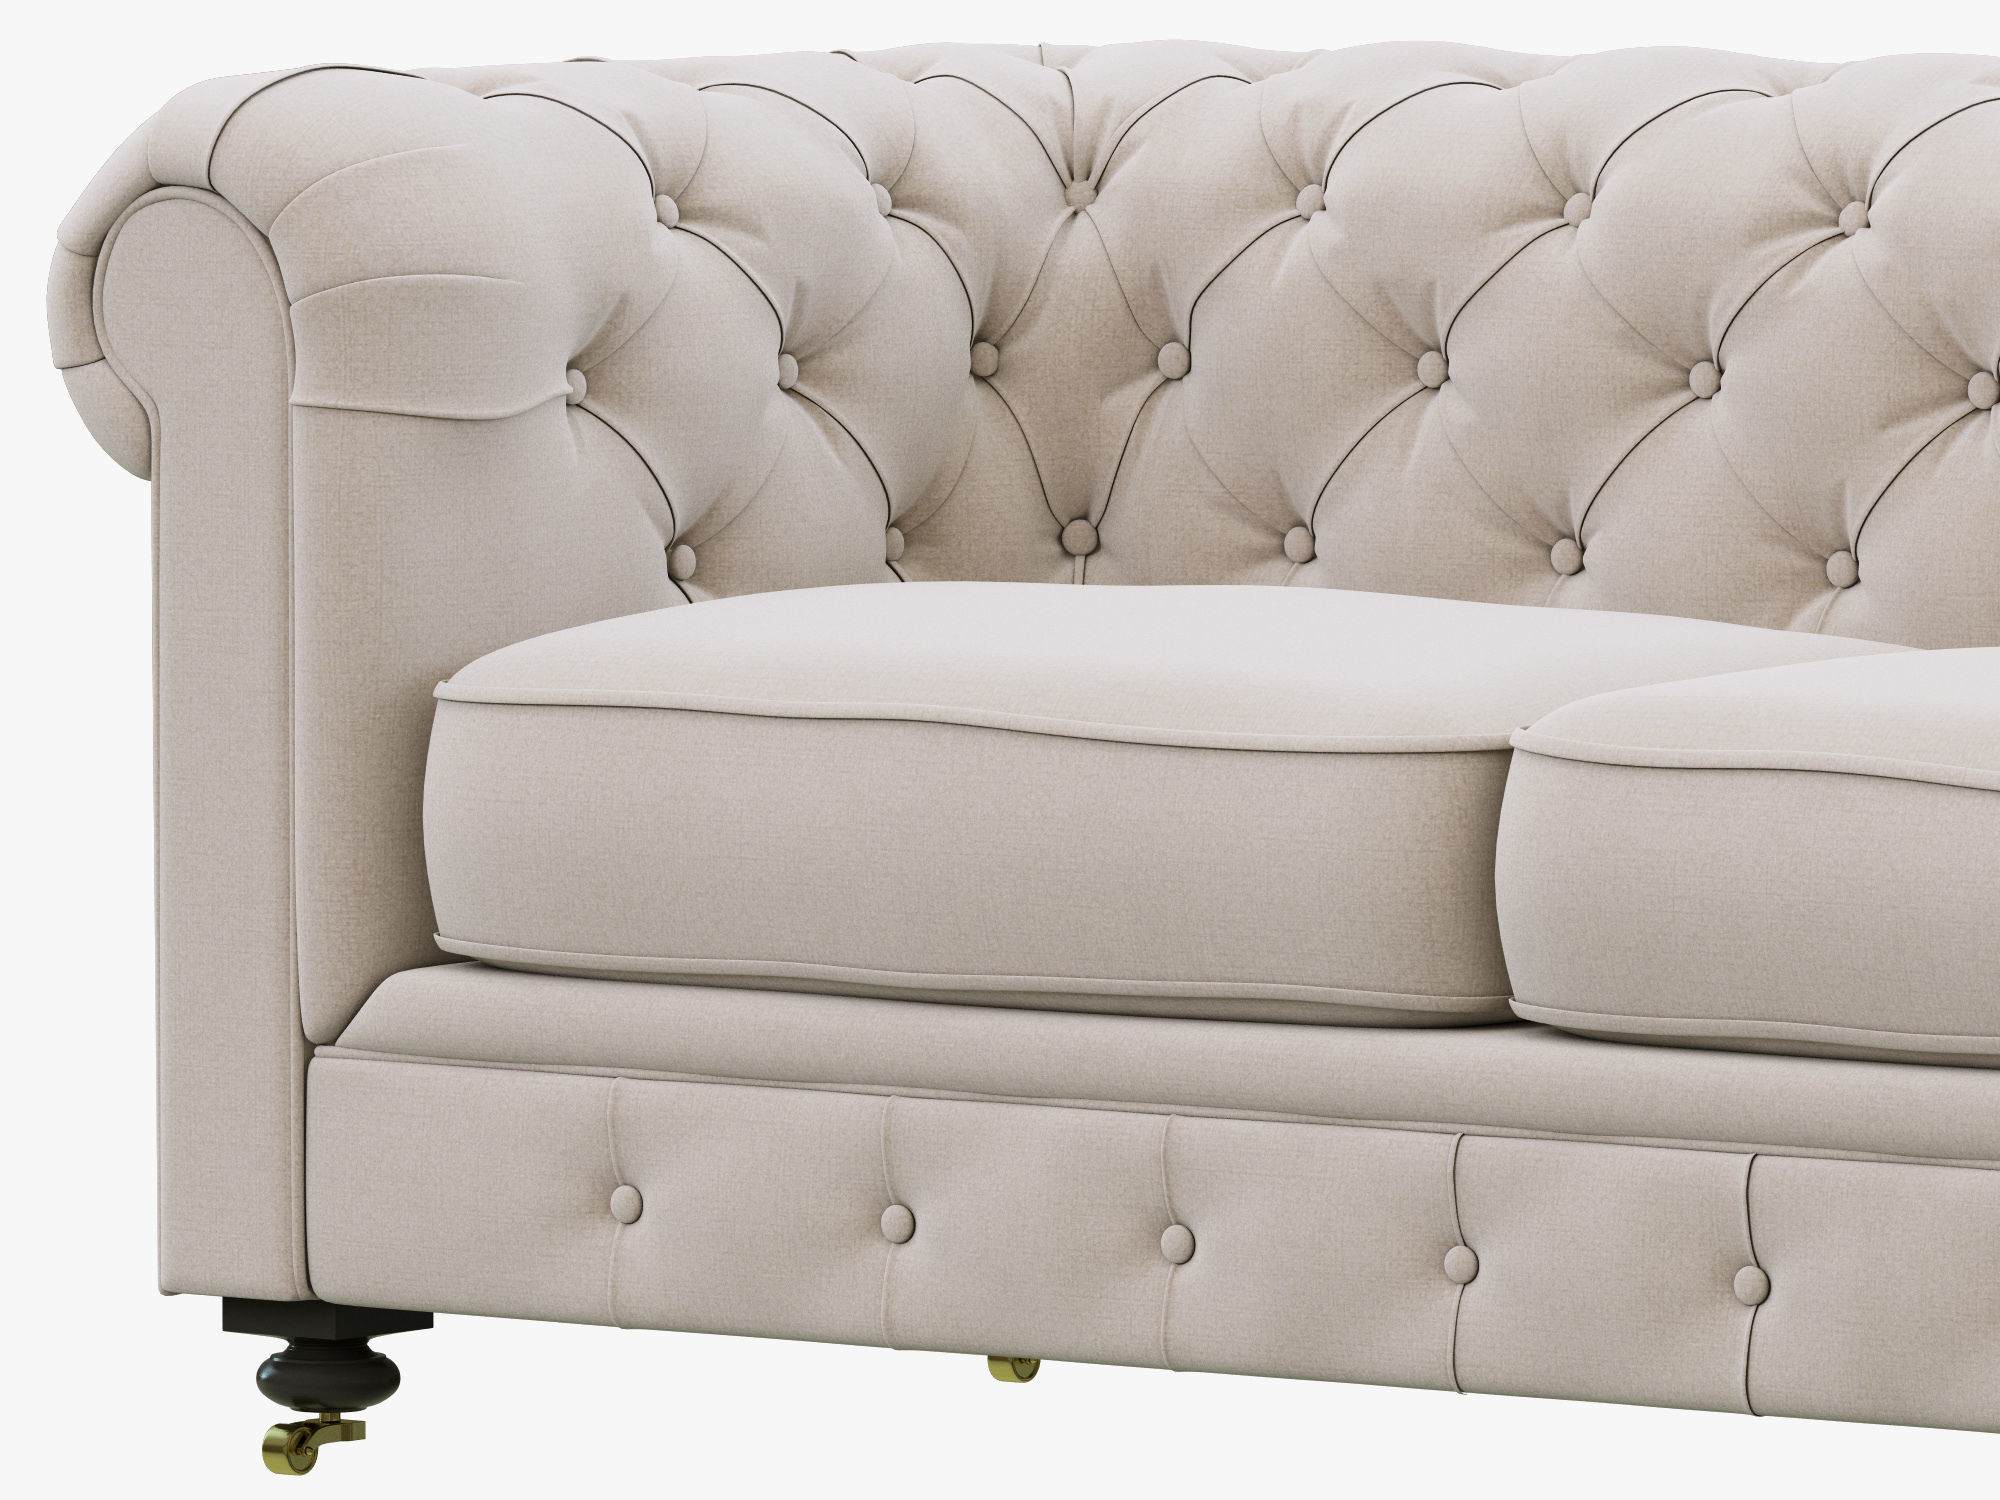 restoration hardware kensington sofa 106 gray with accent chairs upholstered soma fremont roll arm